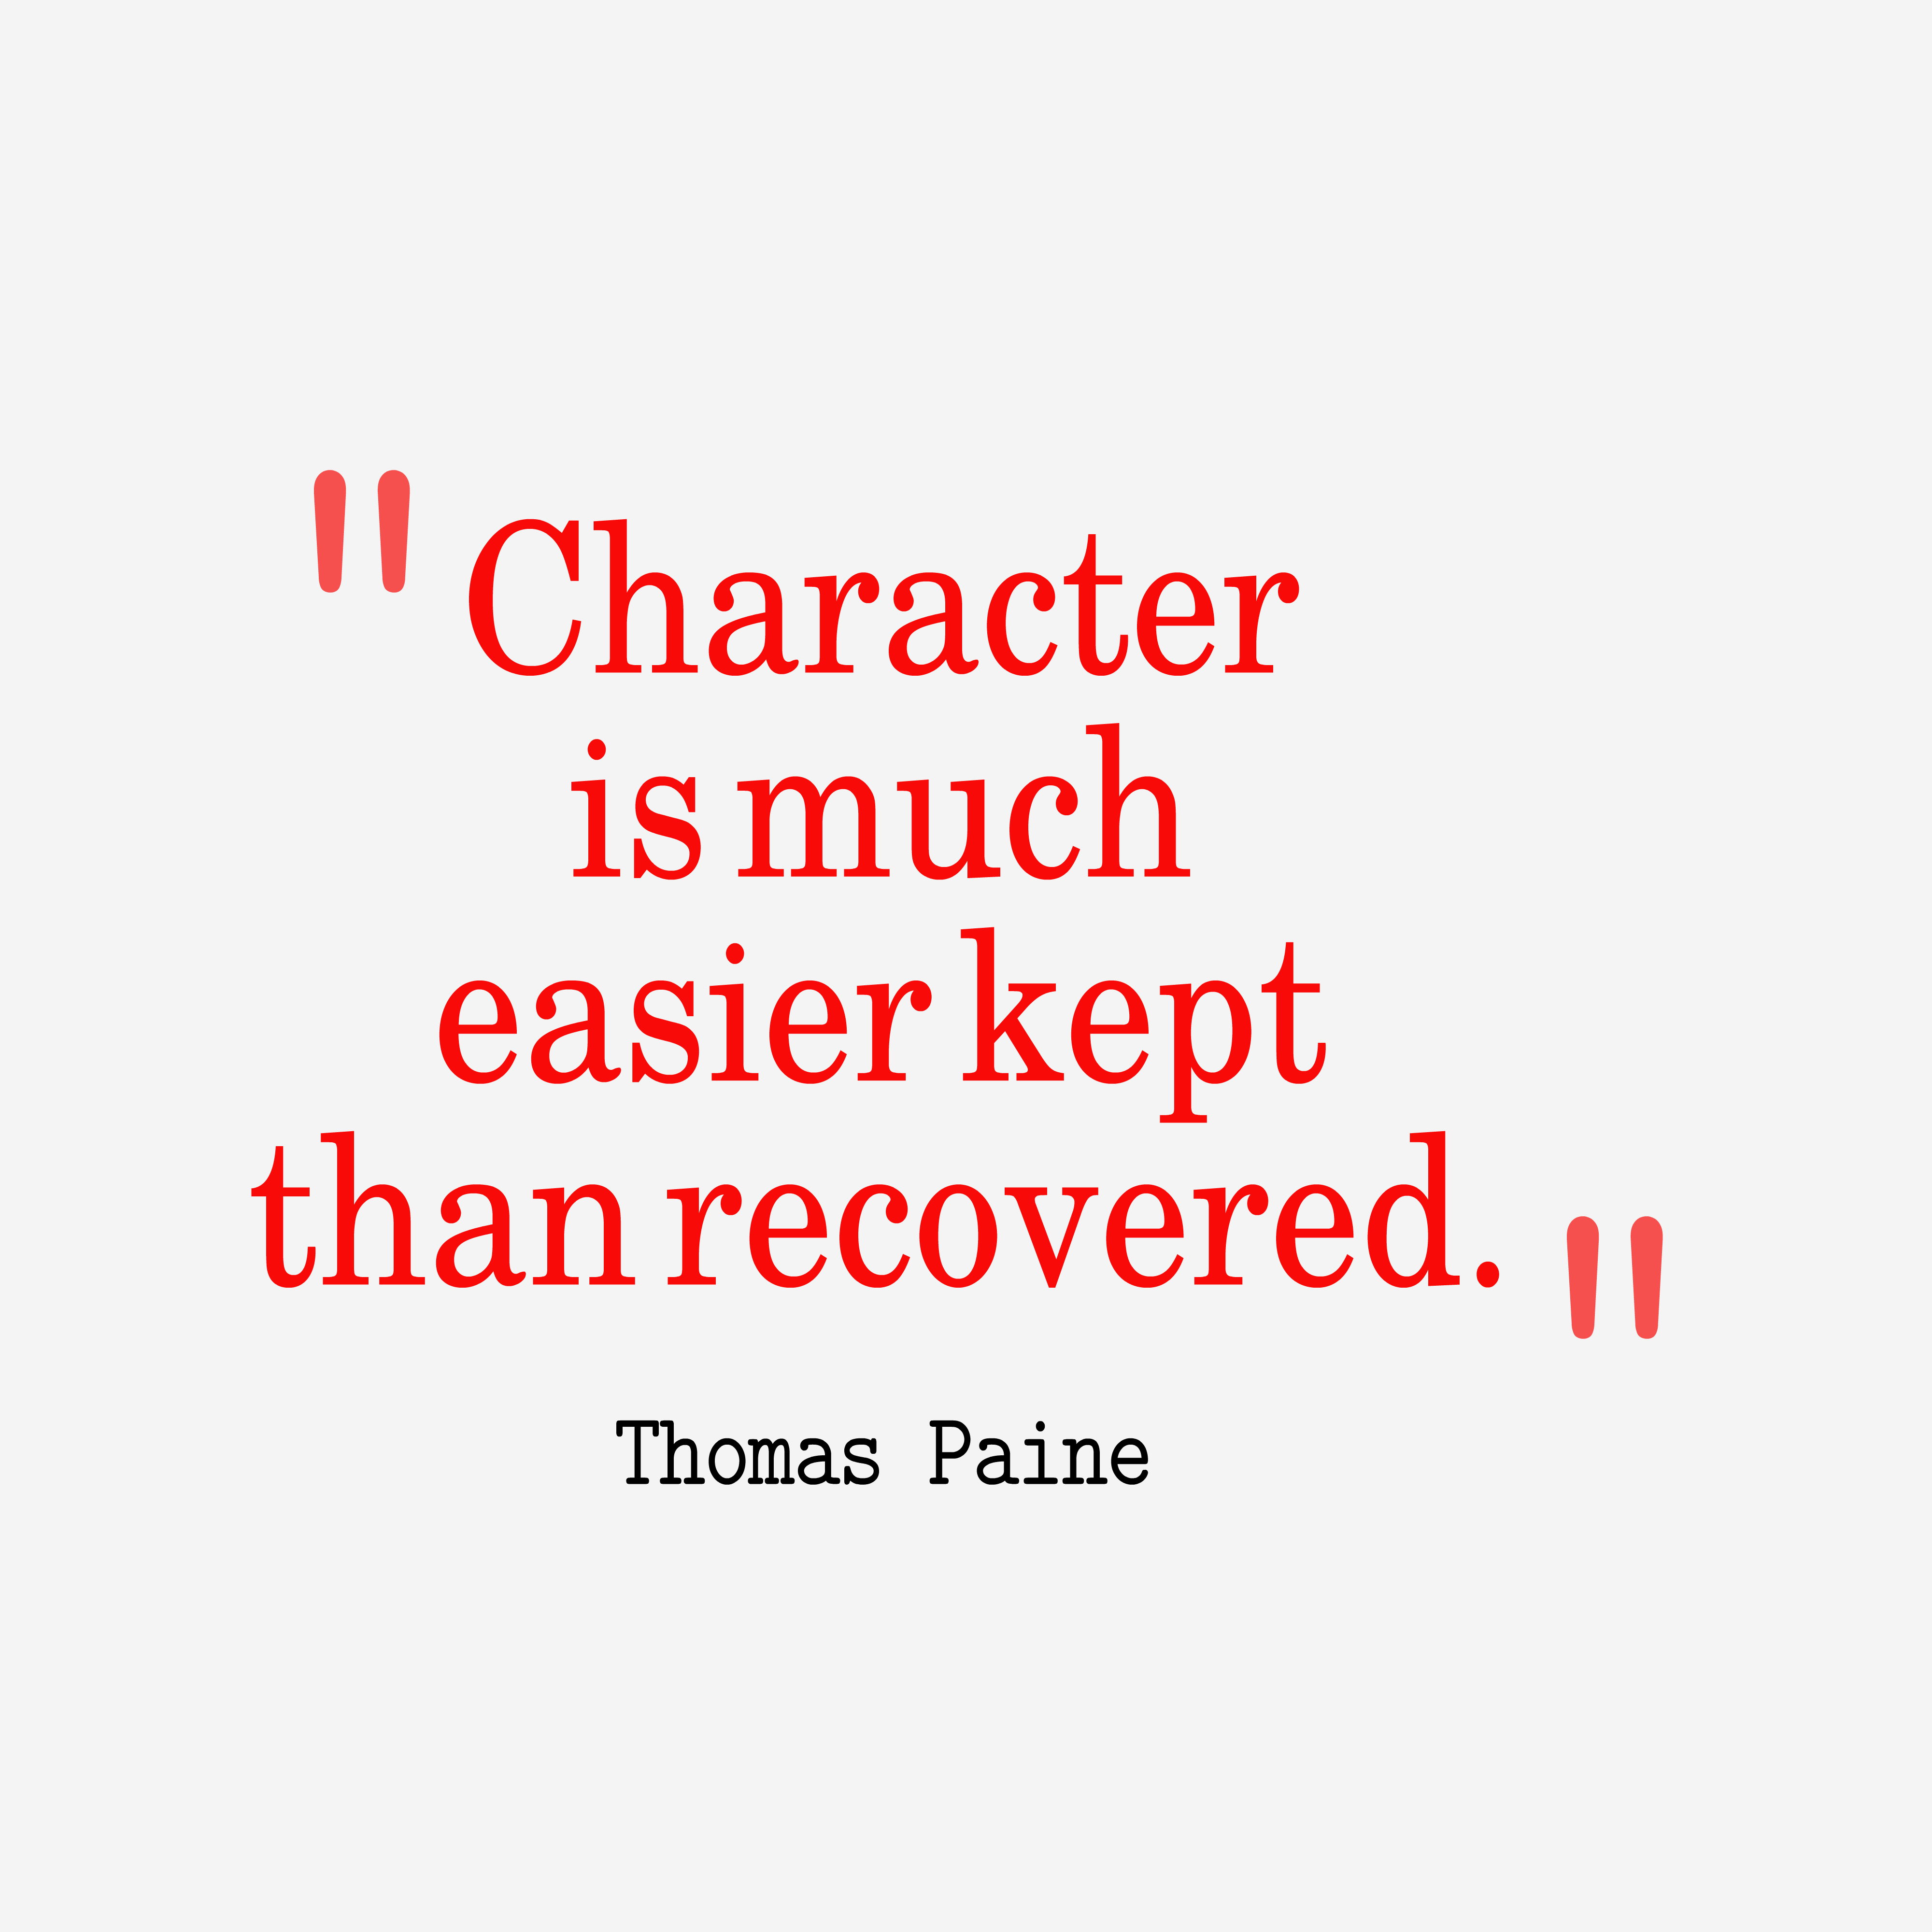 Quotes On Character Characterismucheasierkept__Quotesbythomaspaine71 4000 .